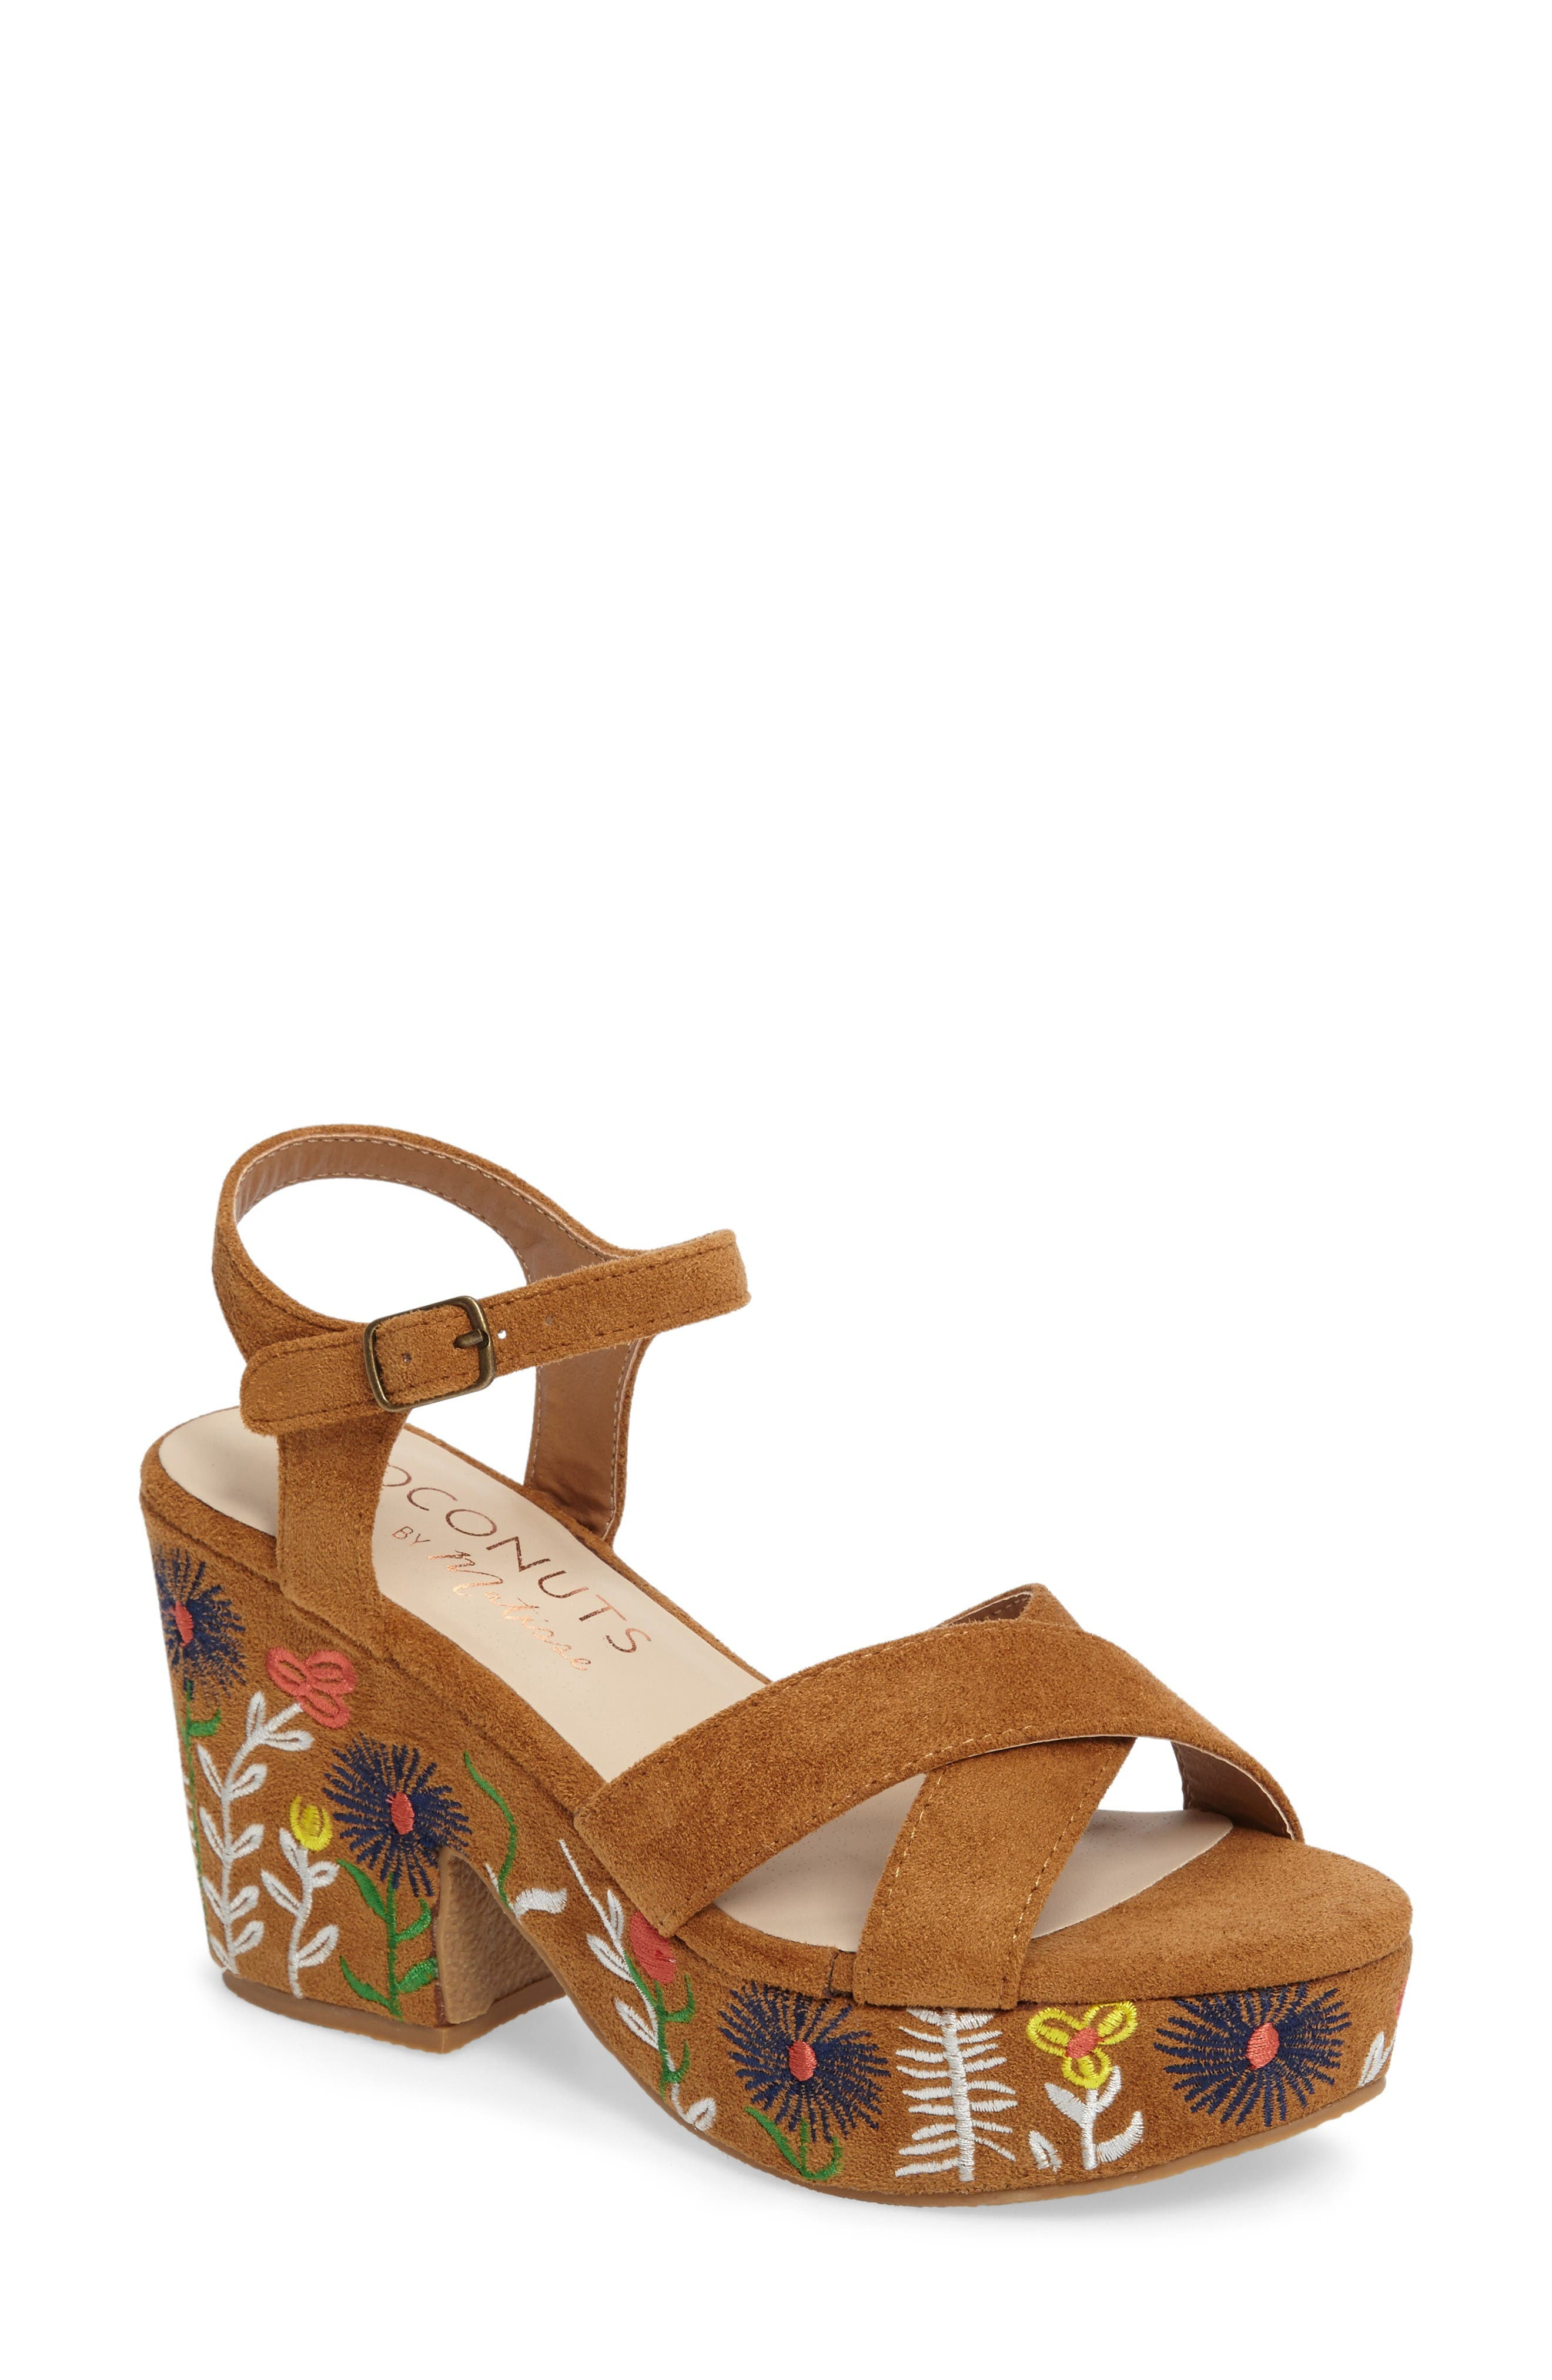 Main Image - Coconuts by Matisse Fresh Platform Sandal (Women)